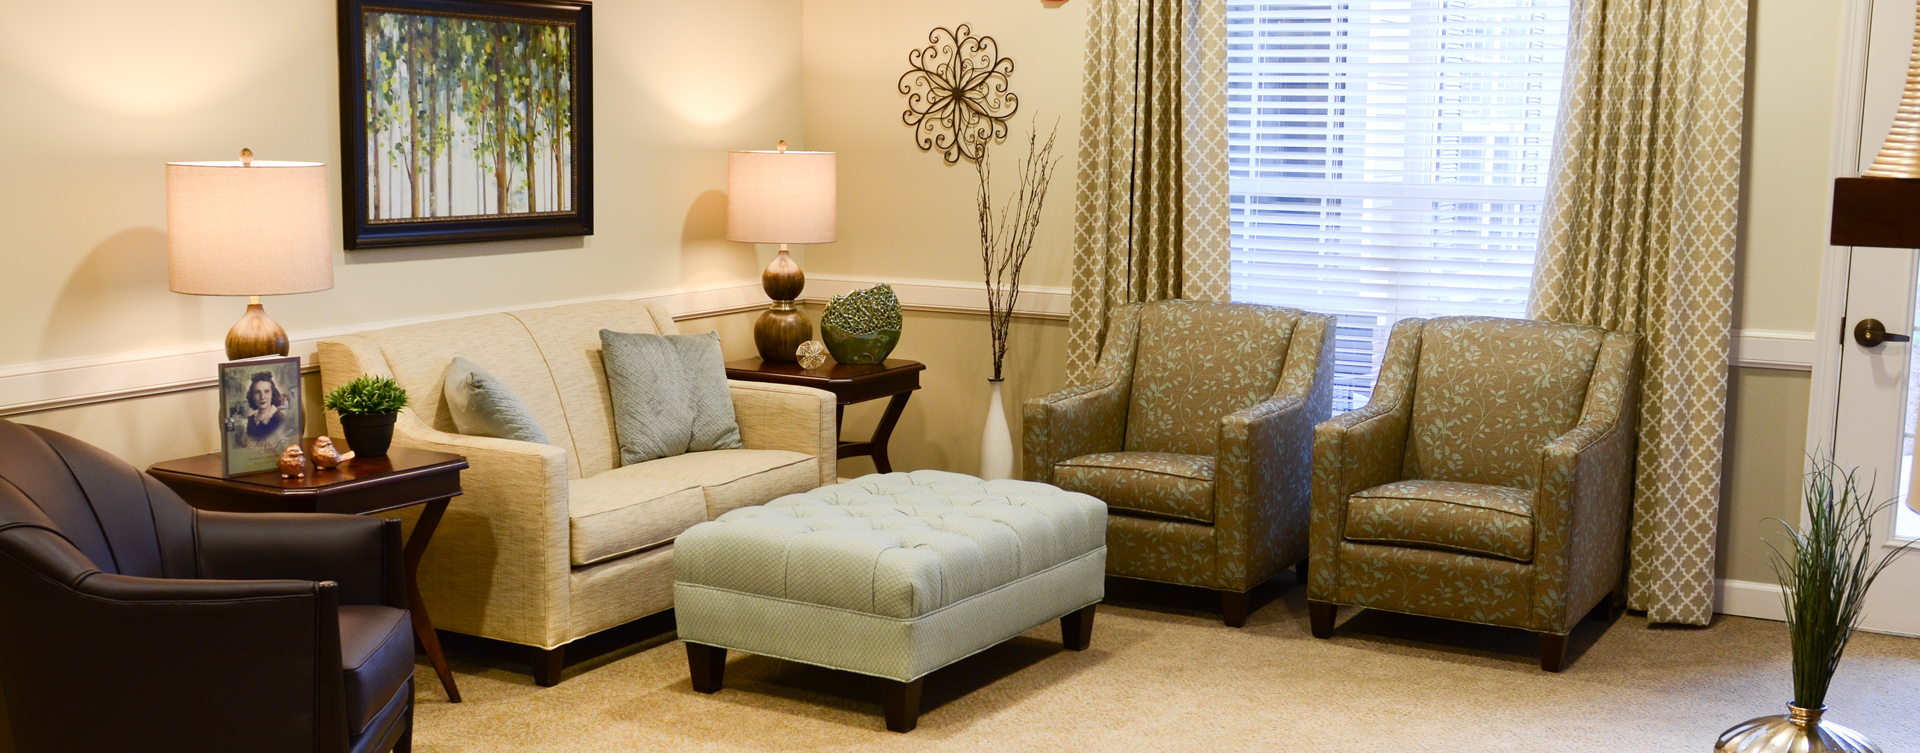 Enjoy a good snooze in the sitting area at Bickford of Aurora